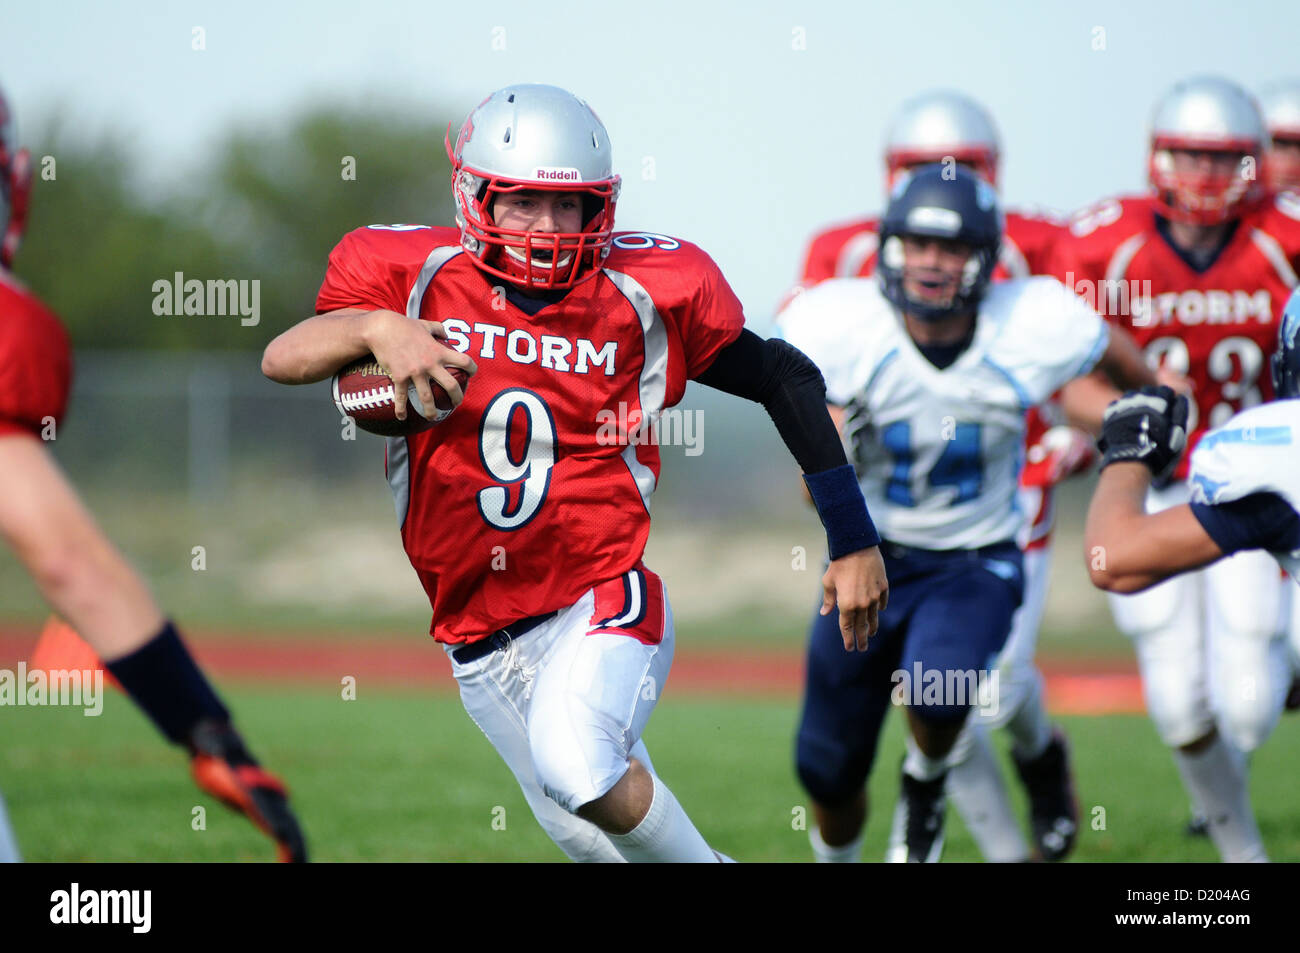 Football quarterback scrambles for yardage during a high school game. USA. - Stock Image